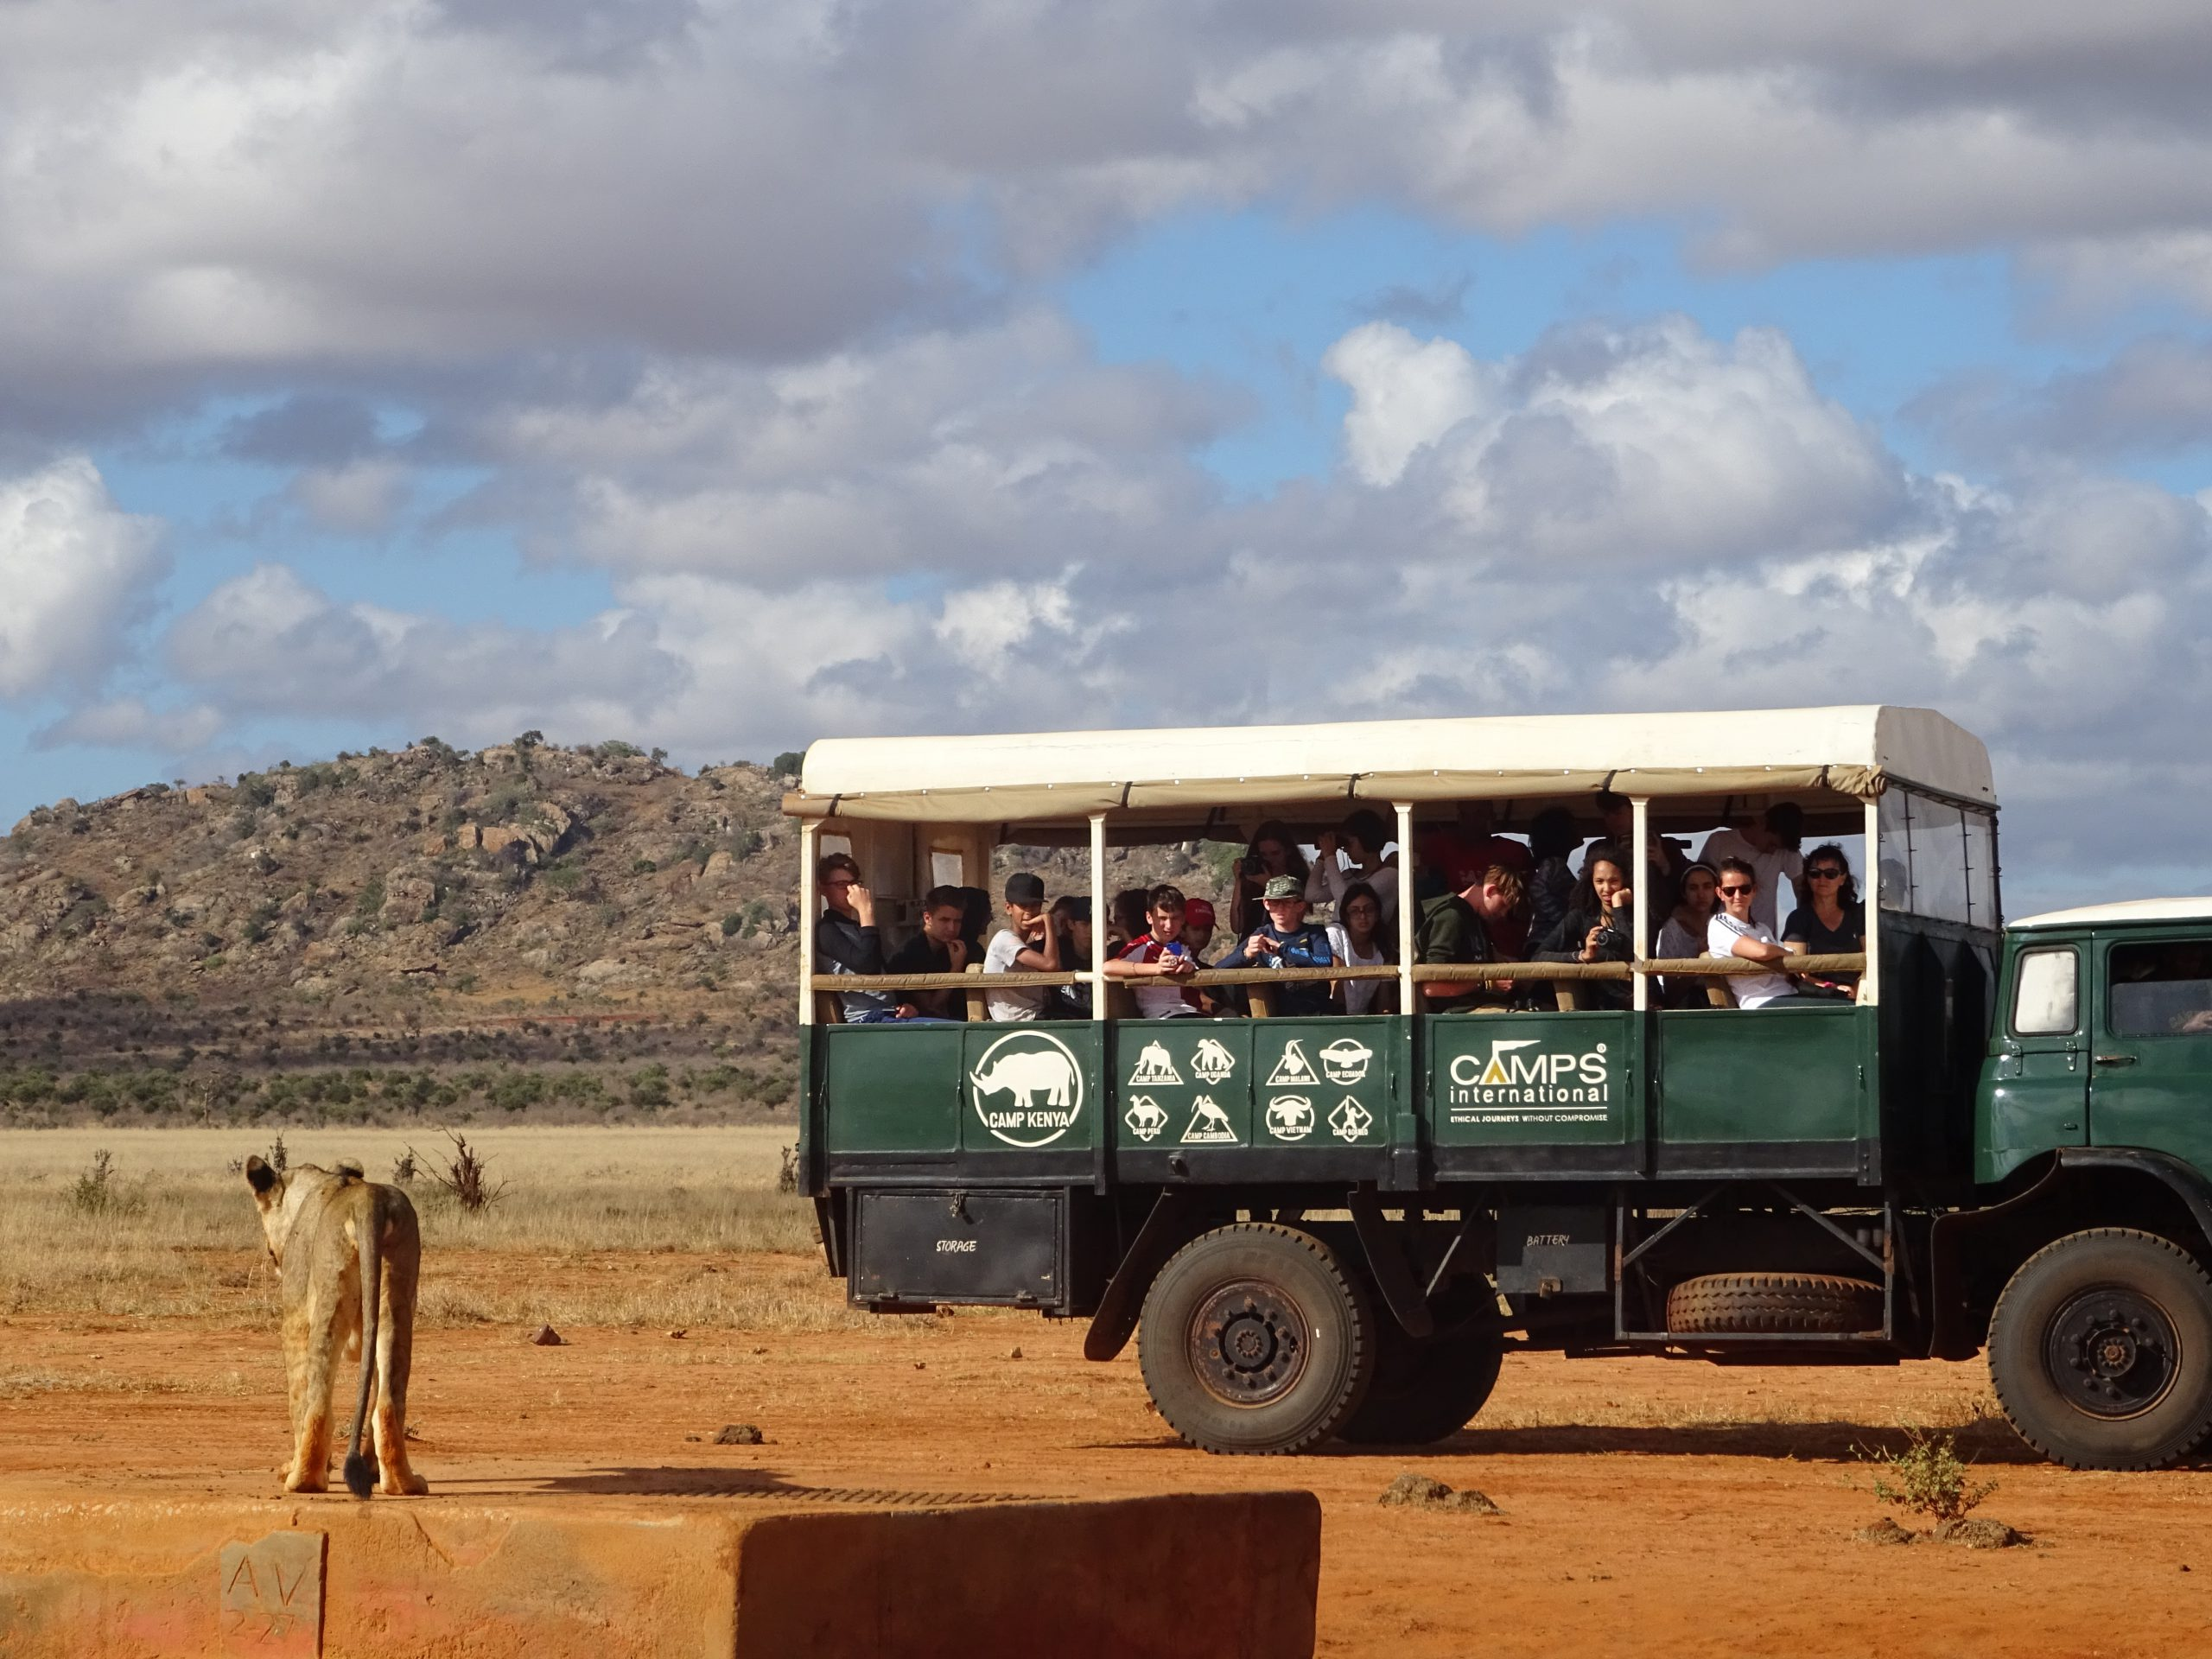 camps_international_safety_vehicle_on_safari